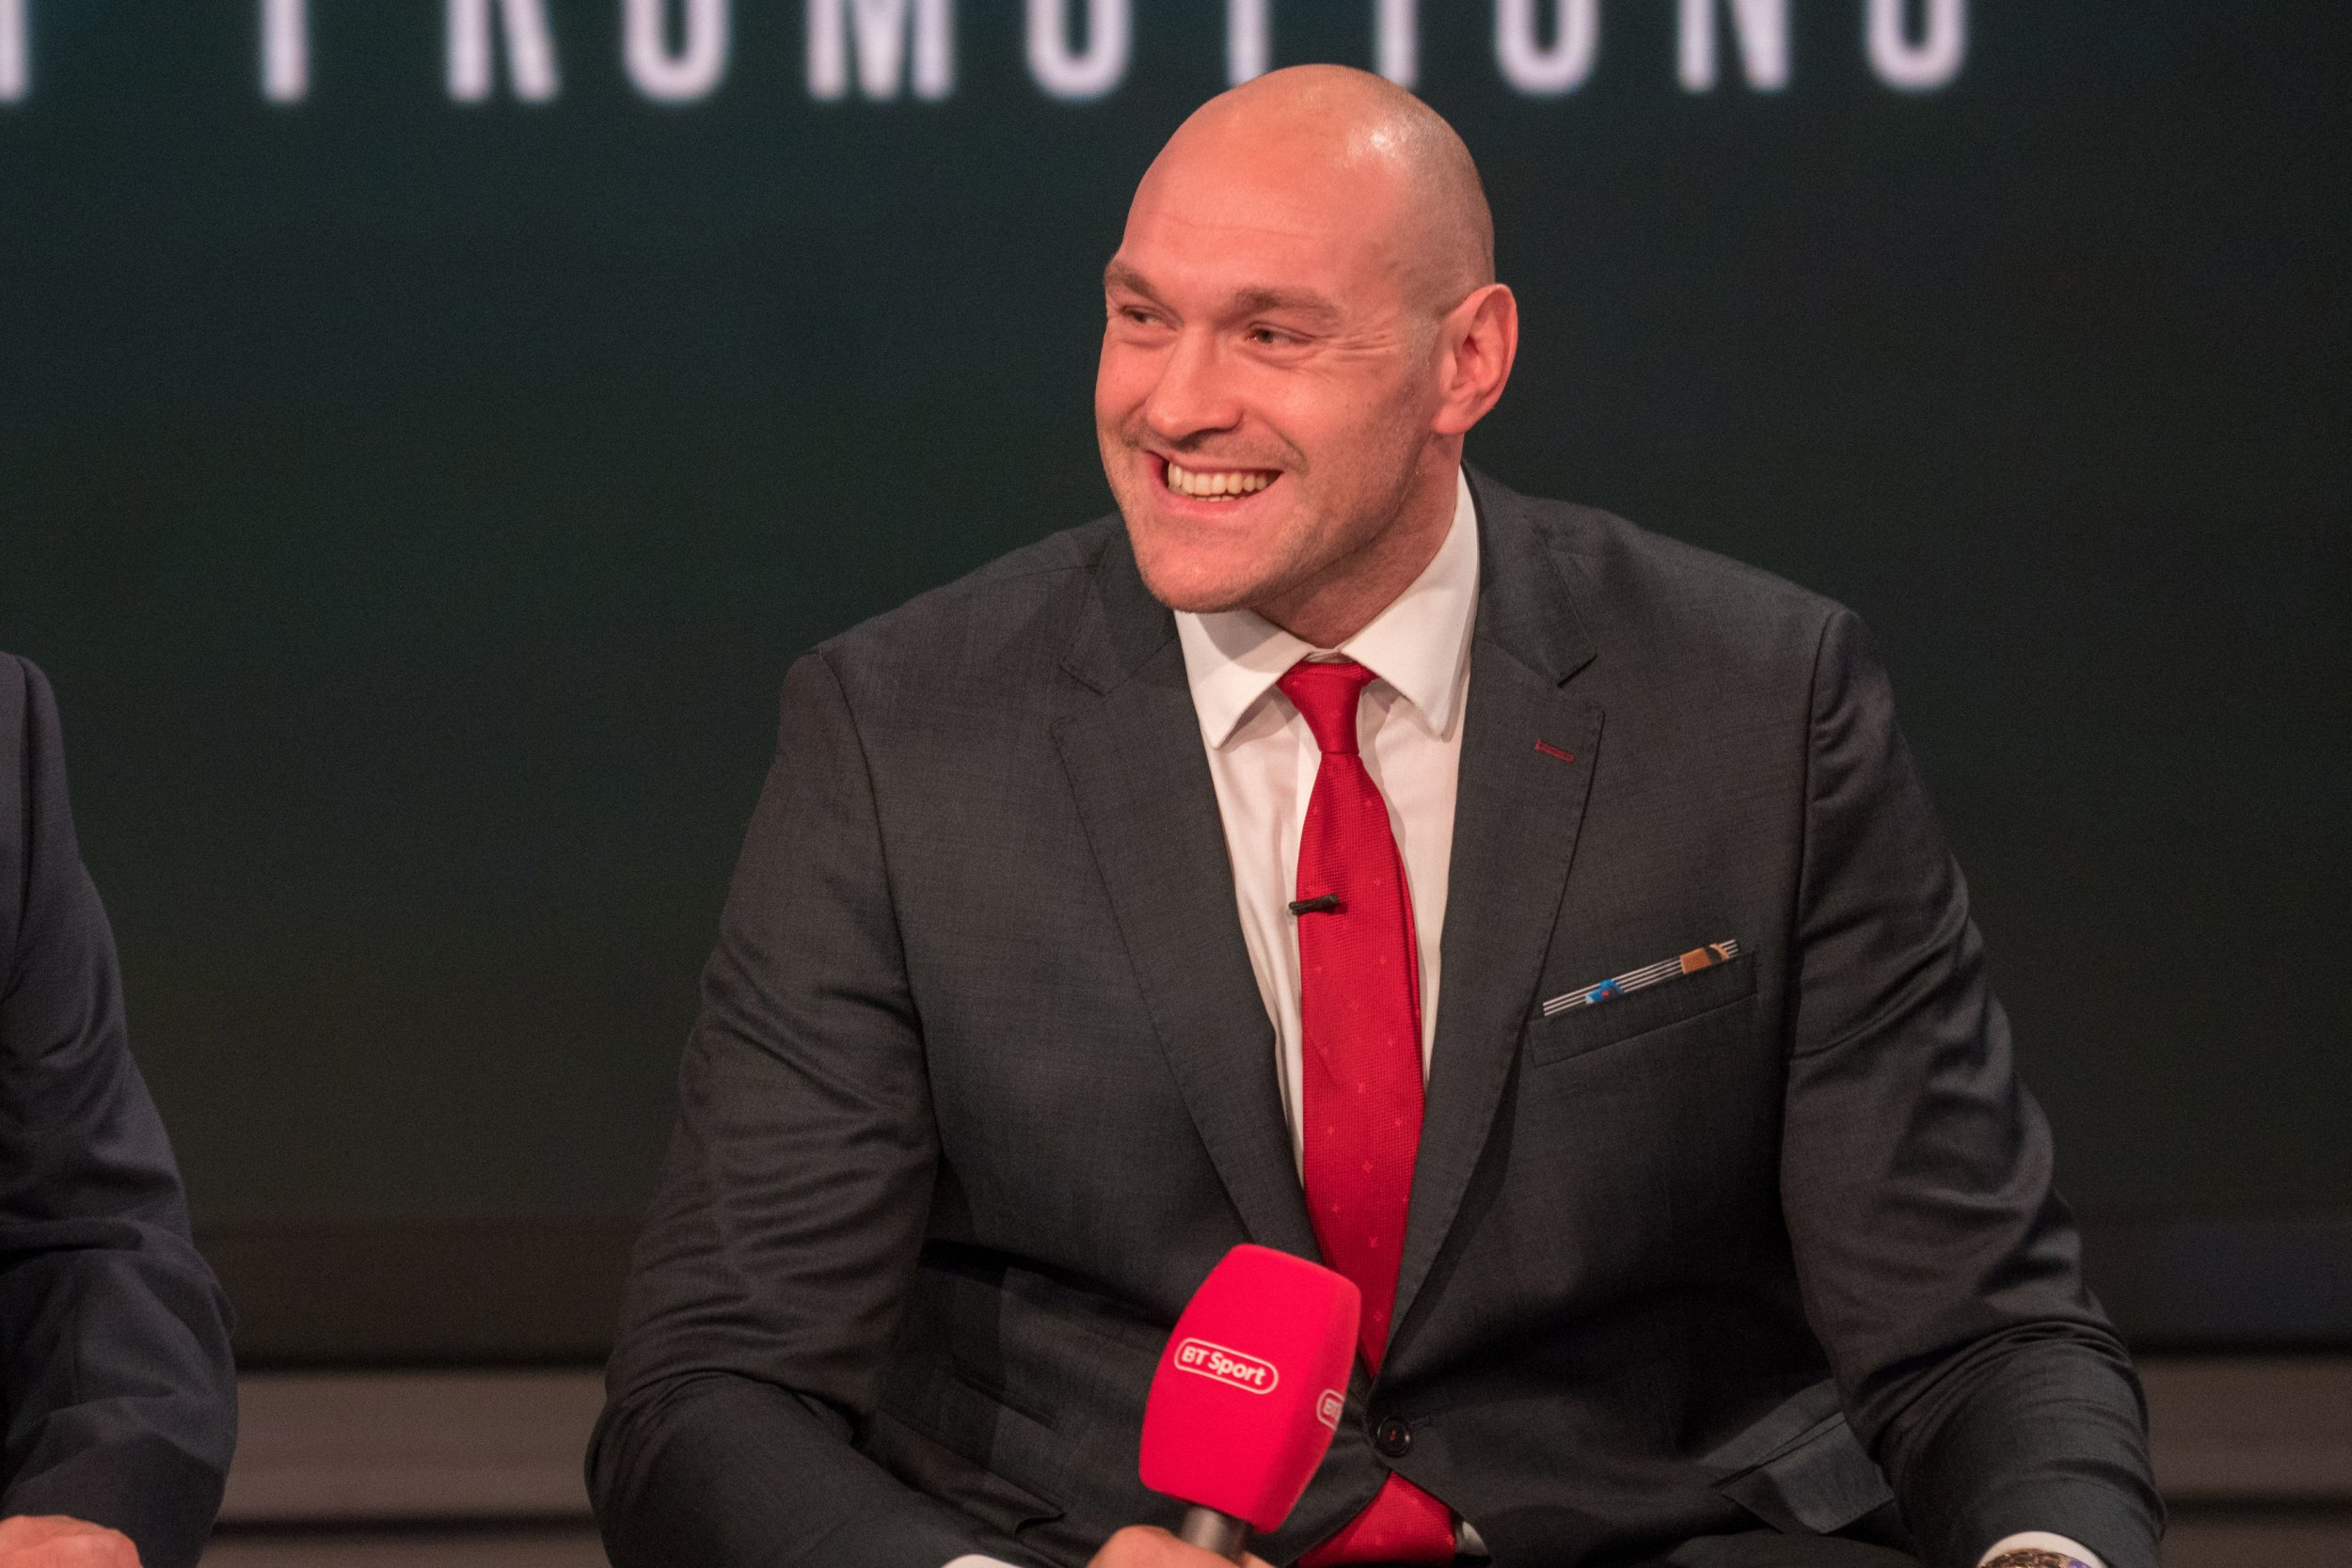 """Handout photo dated 18/02/19 provided by Frank Warren of Tyson Fury during the press conference at BT Sport Studios, London. PRESS ASSOCIATION Photo. Issue date: Monday February 18, 2019. Tyson Fury's proposed rematch with Deontay Wilder has been throw into doubt after the Briton announced a deal with ESPN that makes it the """"exclusive"""" broadcaster of his fights in the United States. See PA story BOXING Fury. Photo credit should read: BT Sport/PA Wire. NOTE TO EDITORS: This handout photo may only be used in for editorial reporting purposes for the contemporaneous illustration of events, things or the people in the image or facts mentioned in the caption. Reuse of the picture may require further permission from the copyright holder."""